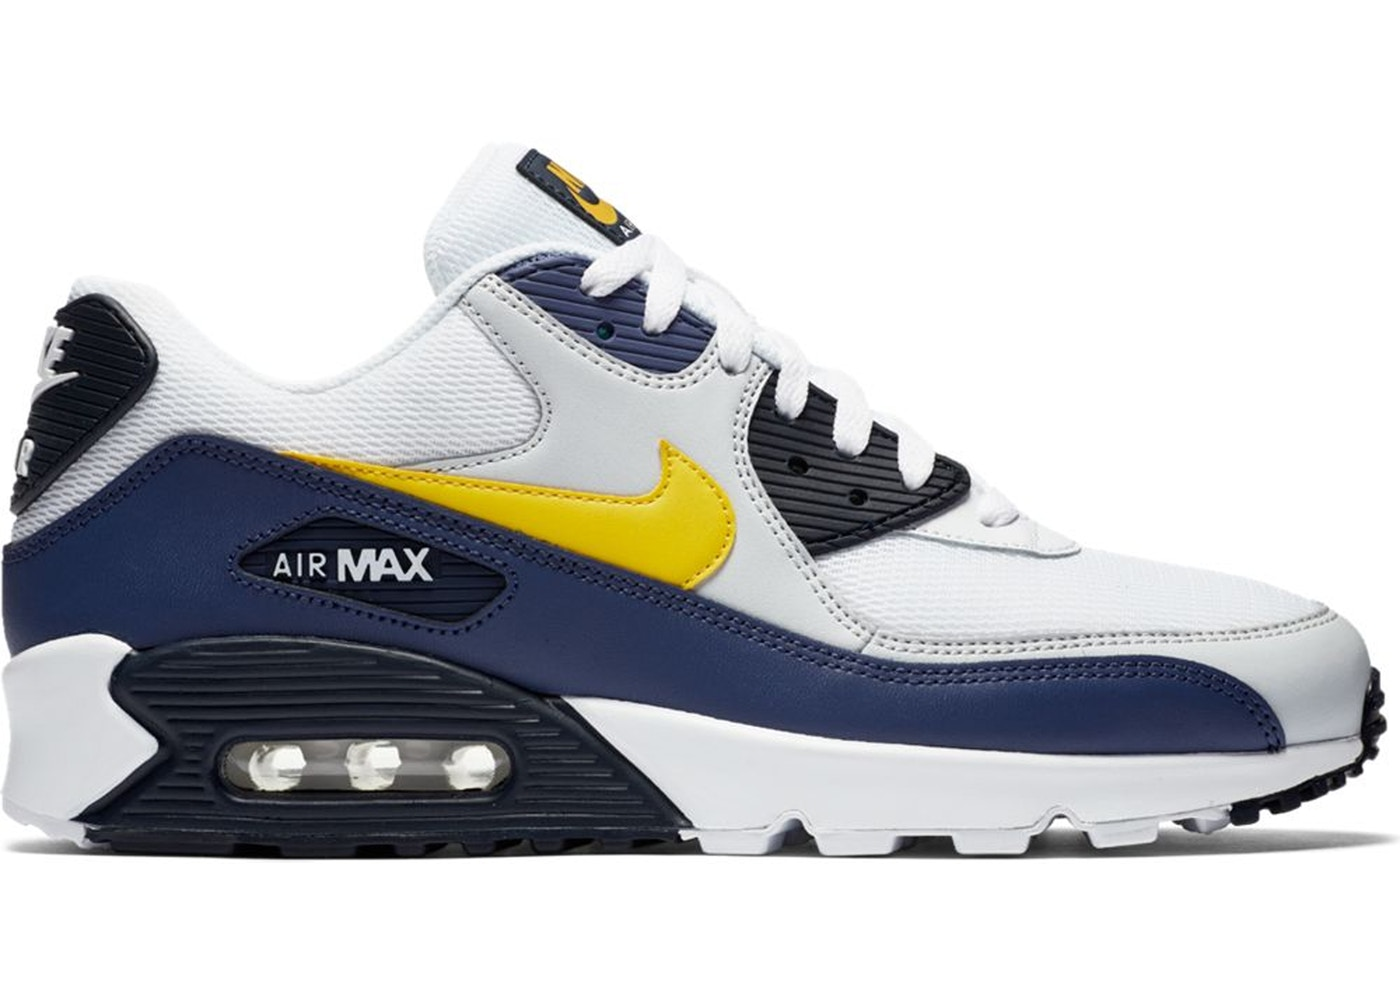 ナイキ NIKE エア マックス スニーカー 【 AIR MAX 90 MICHIGAN WHITE TOUR YELLOWBLUE RECALL 】 メンズ